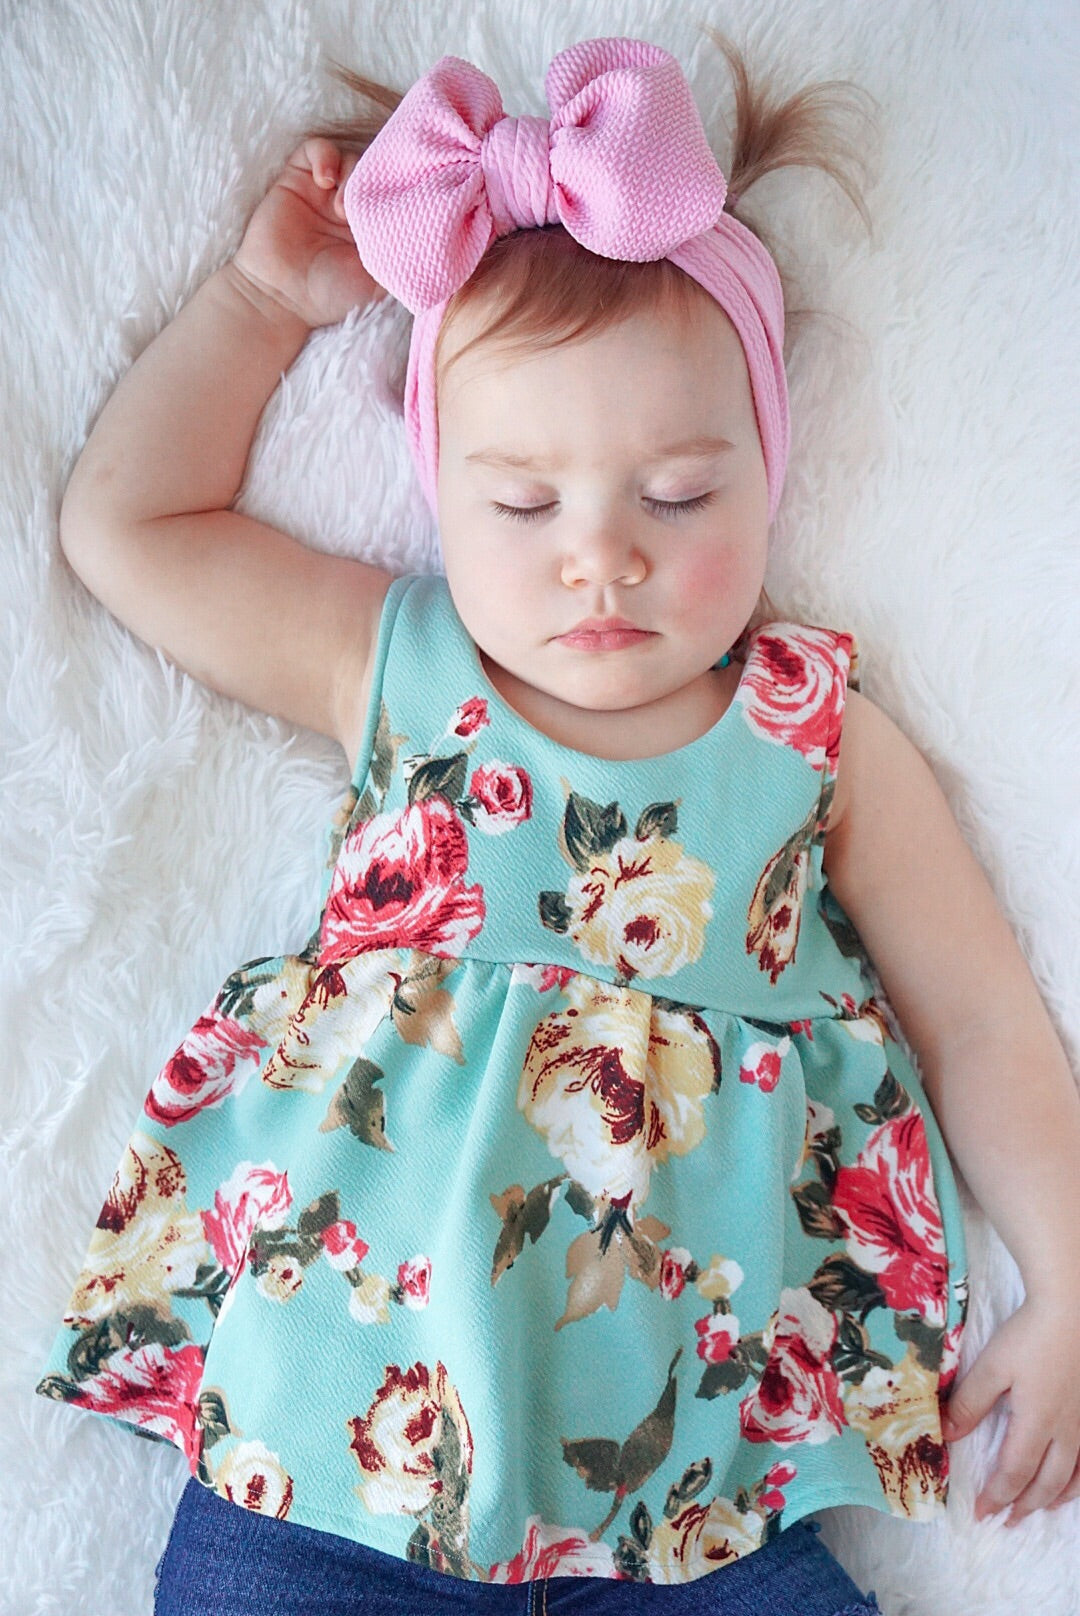 sweet baby girl pink bow mint green floral bohemian toddler top from little posh babes